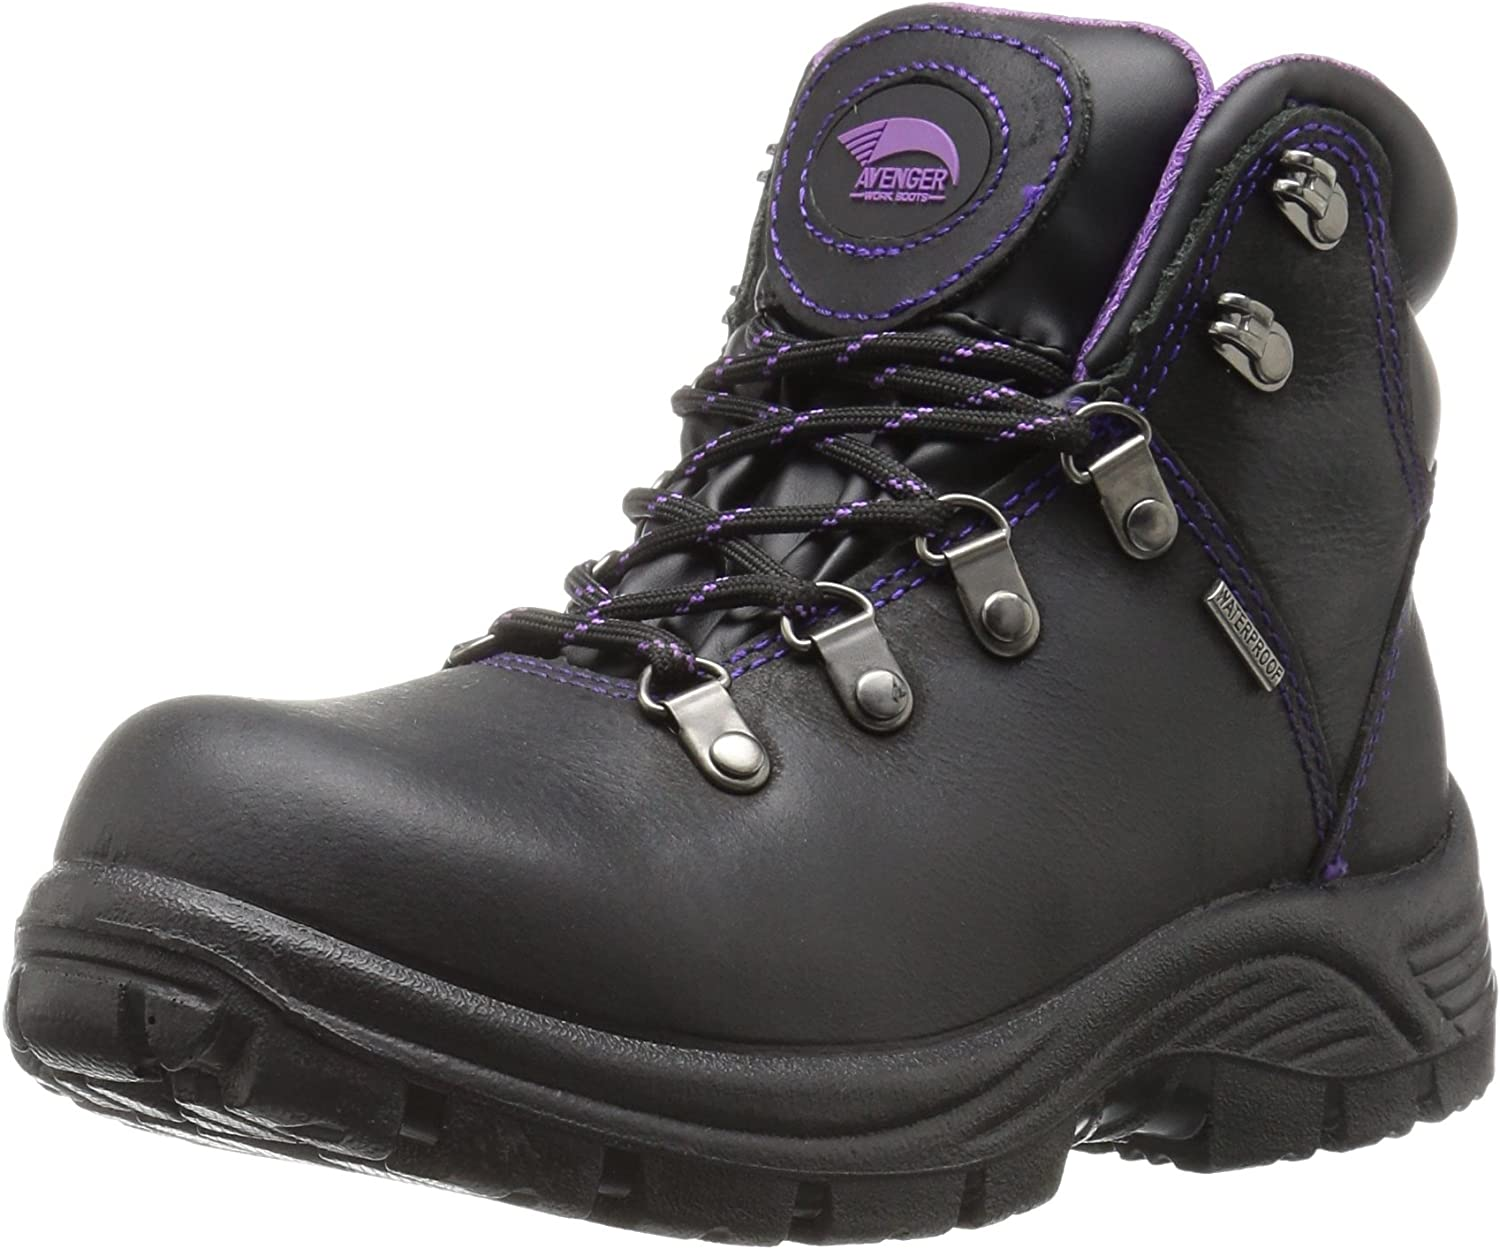 Avenger Safety Footwear Womens Avenger 7124 Womens Waterproof Safety Toe Eh Sr Hiker Industrial & Construction shoes